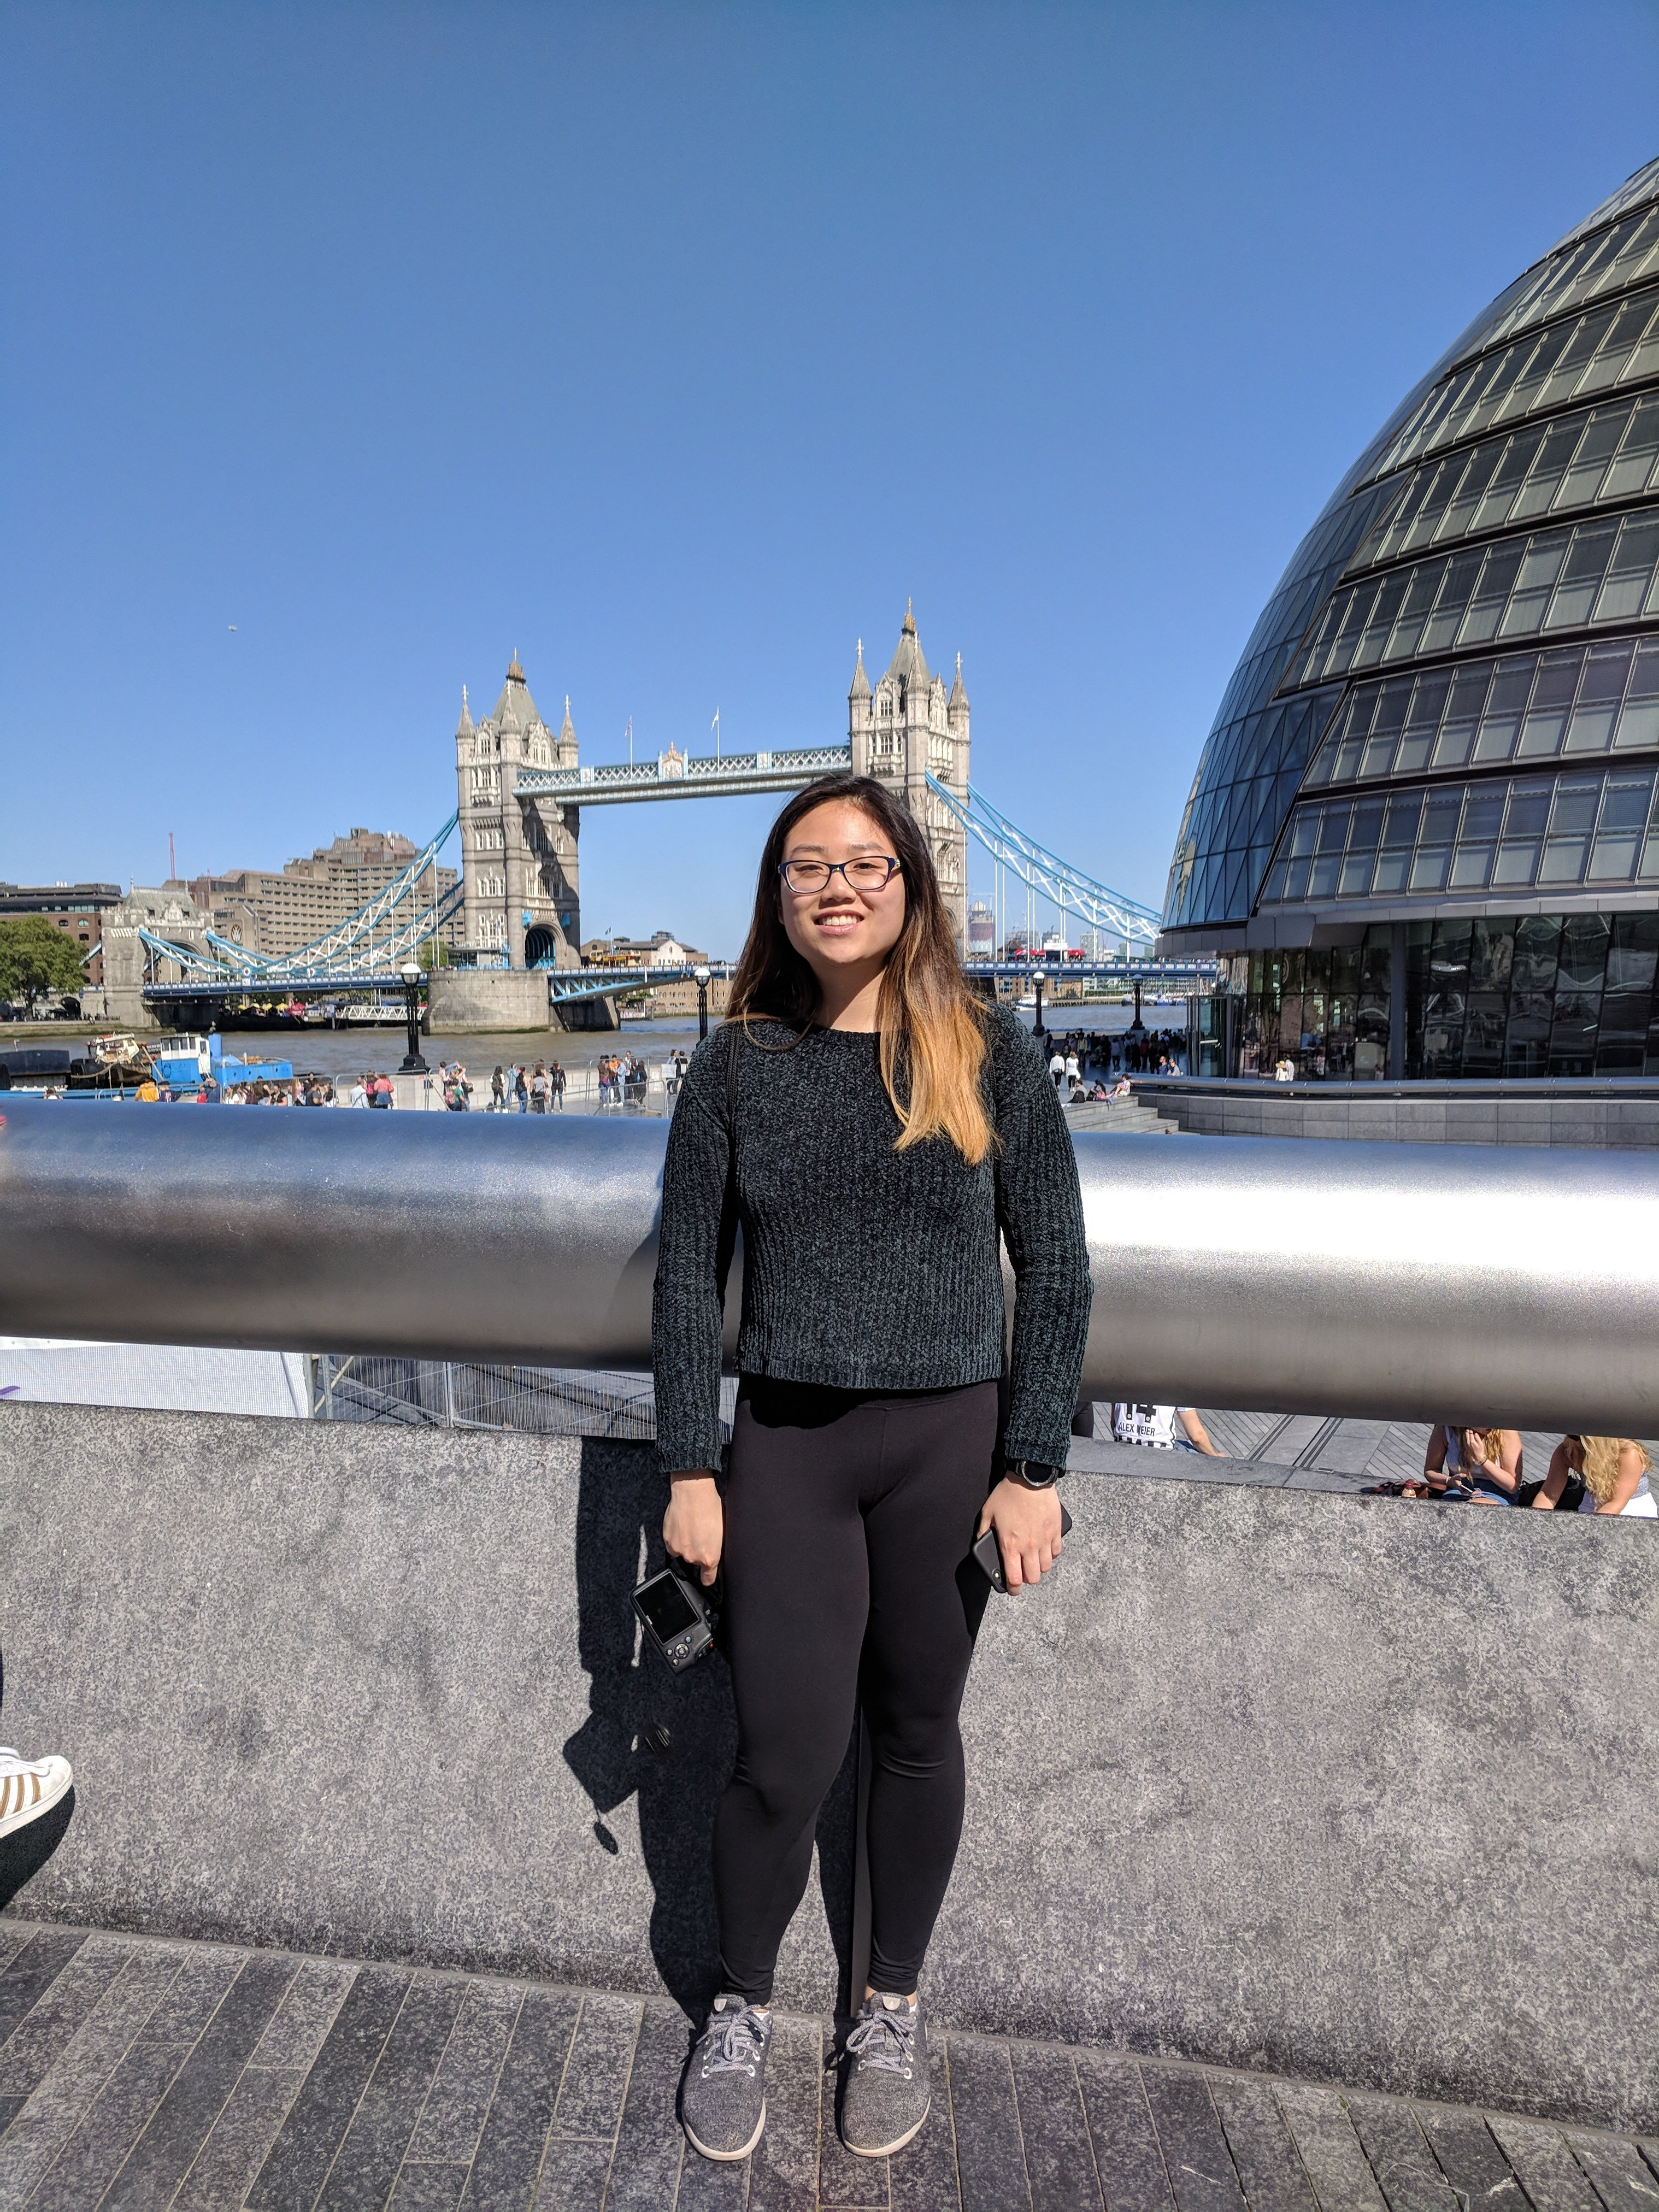 CAPAStudyAbroad_London_Summer2018_From Alice Ding - In Front of Tower Bridge